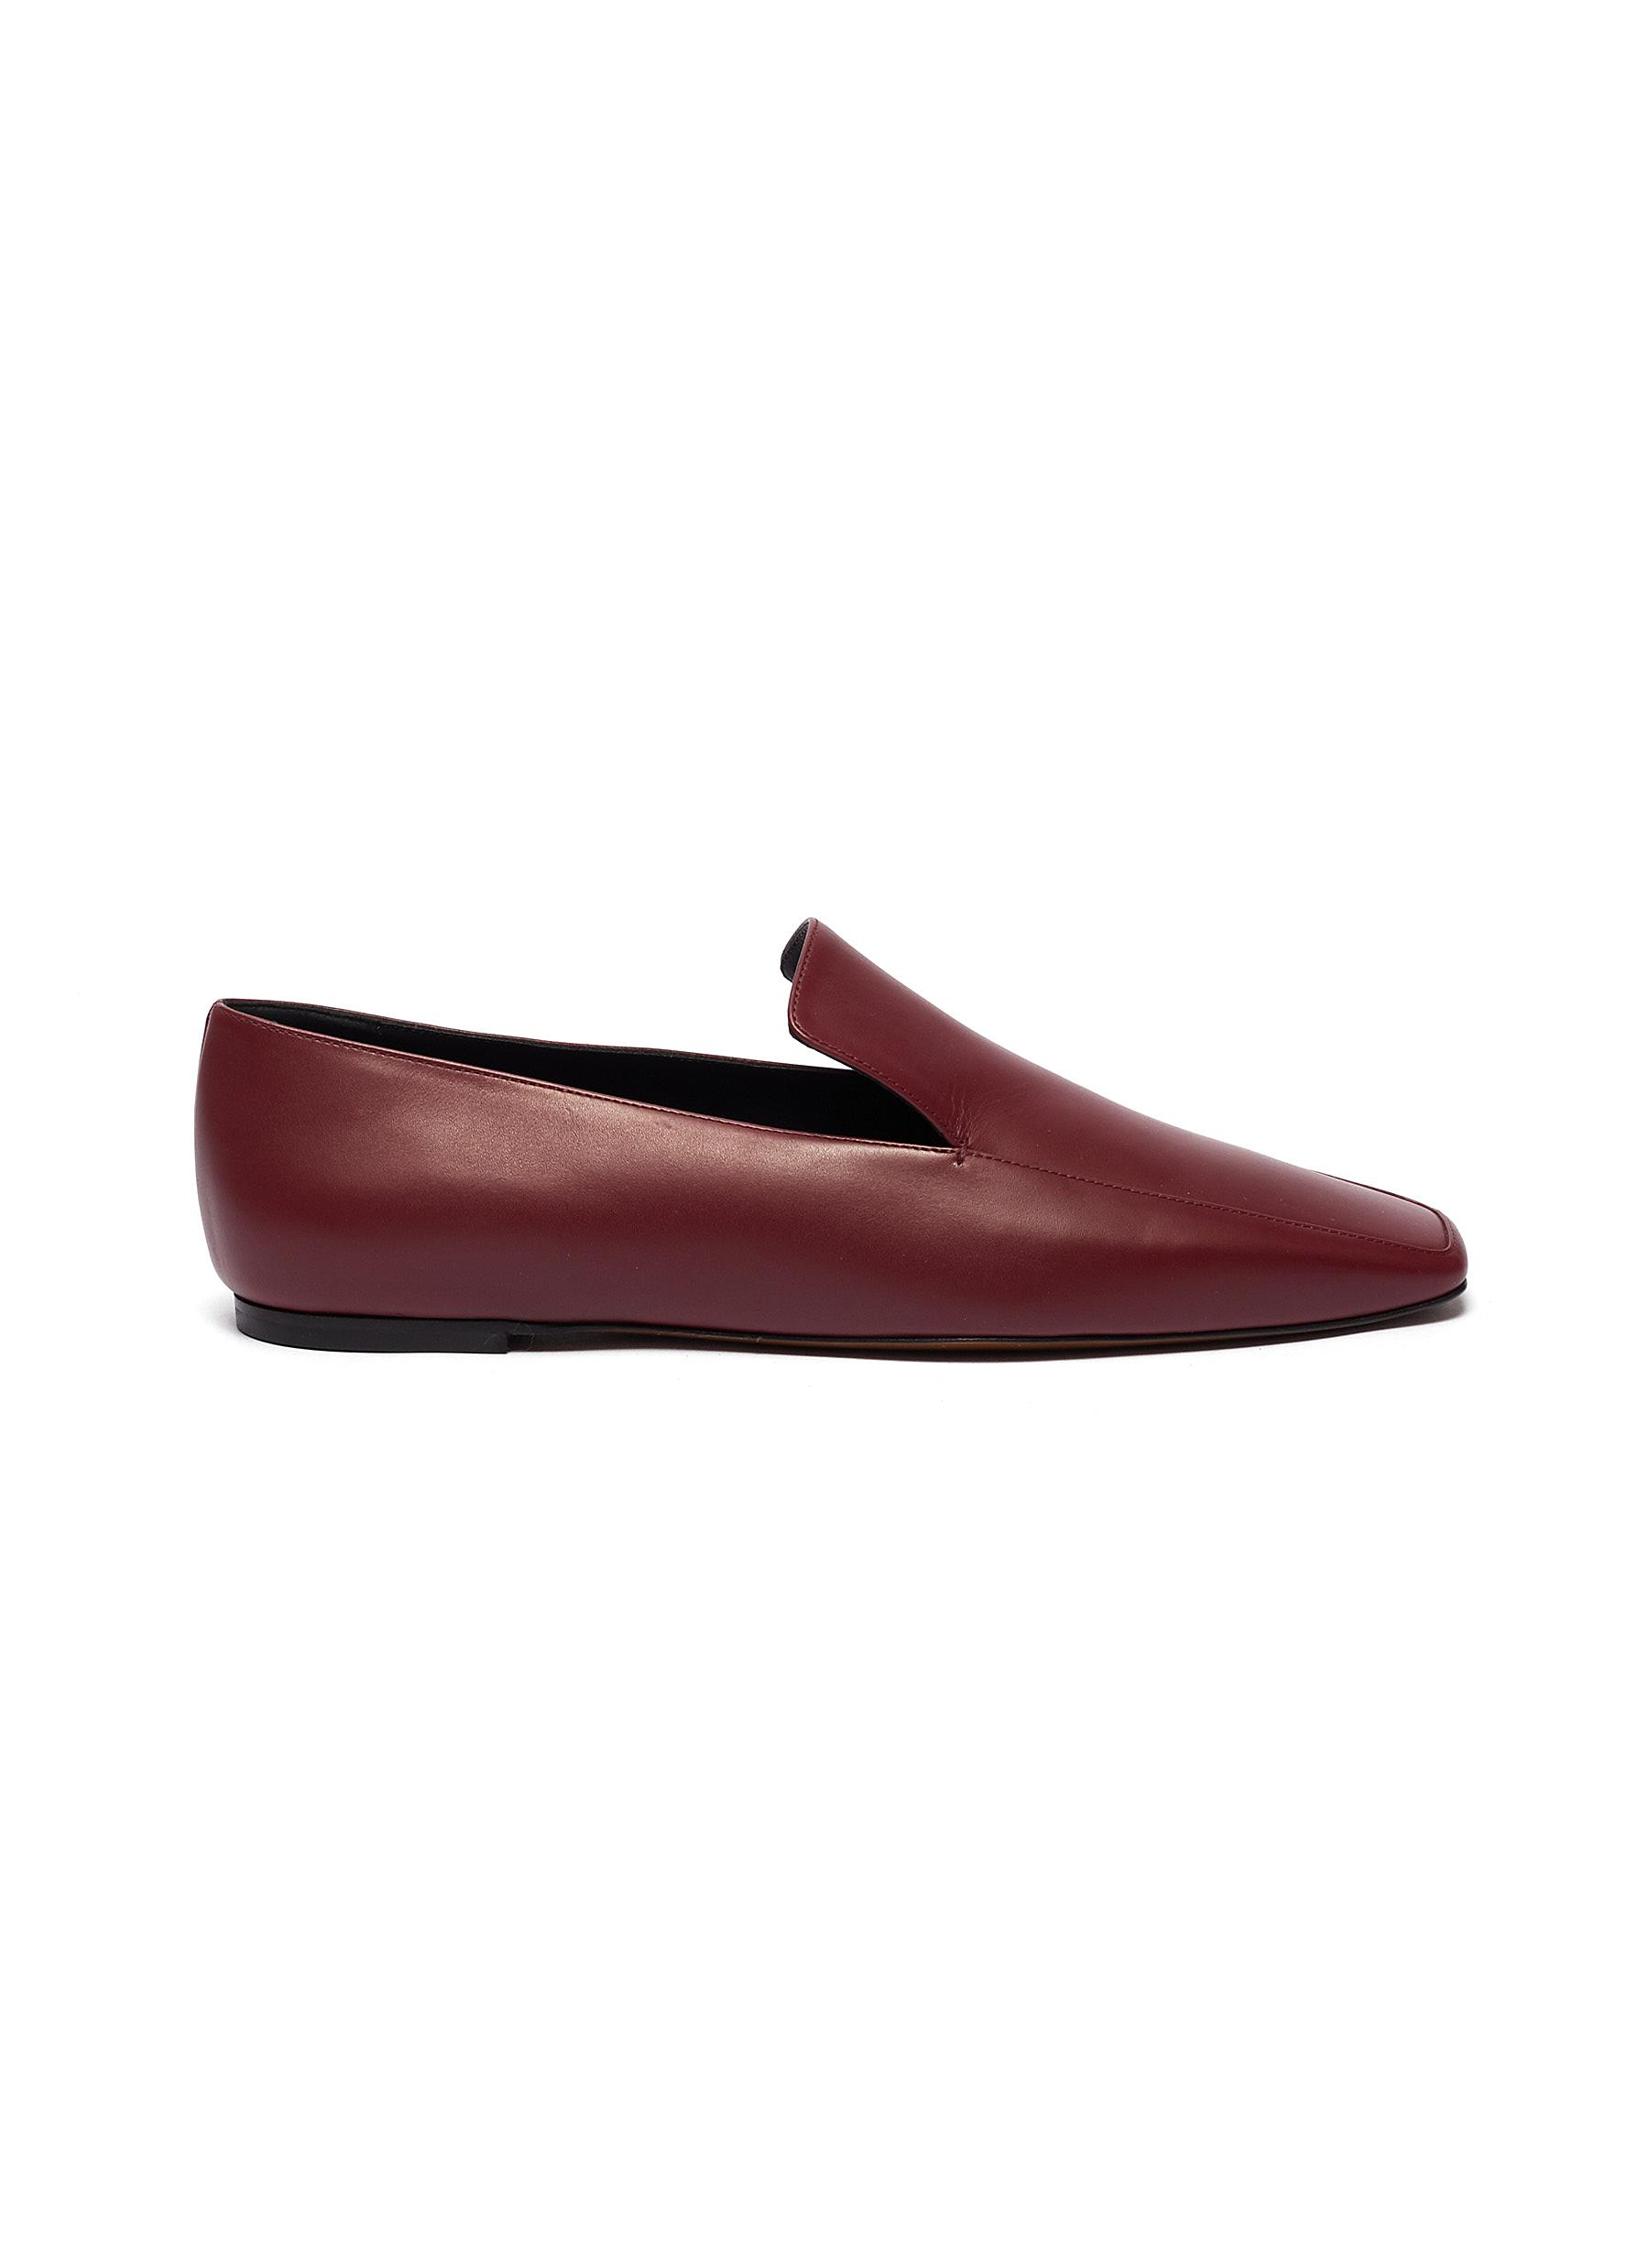 Neous Flats Prom Square Toe Leather Loafers